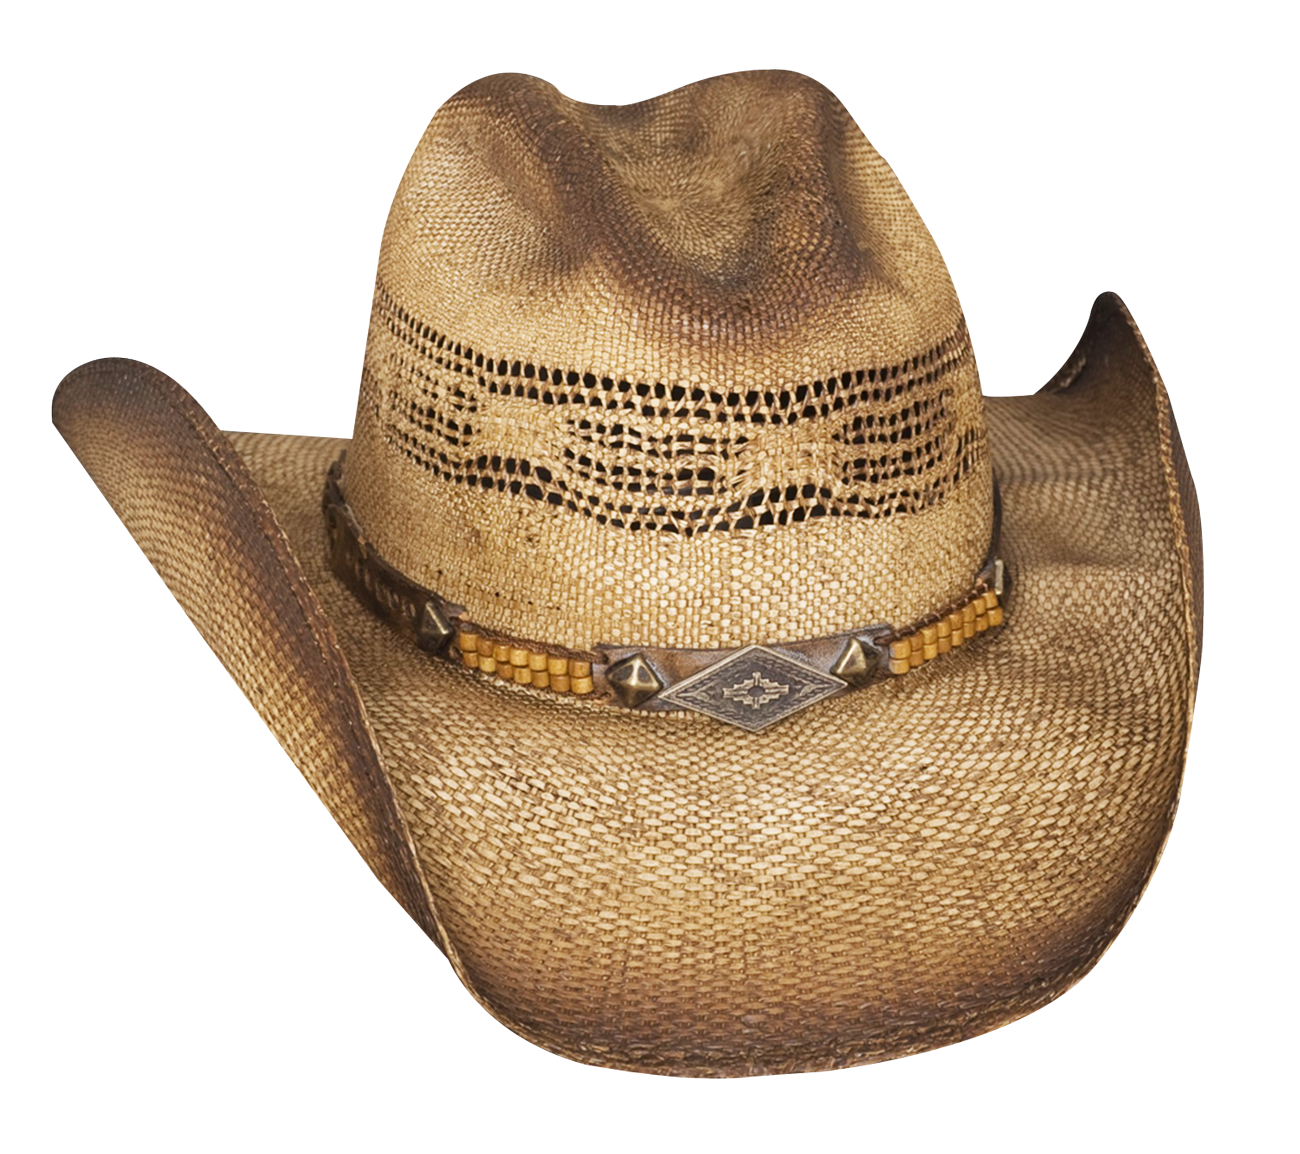 Cowboy Hat Png Transparent Image Pngpix In this page you can download free png images: pngpix